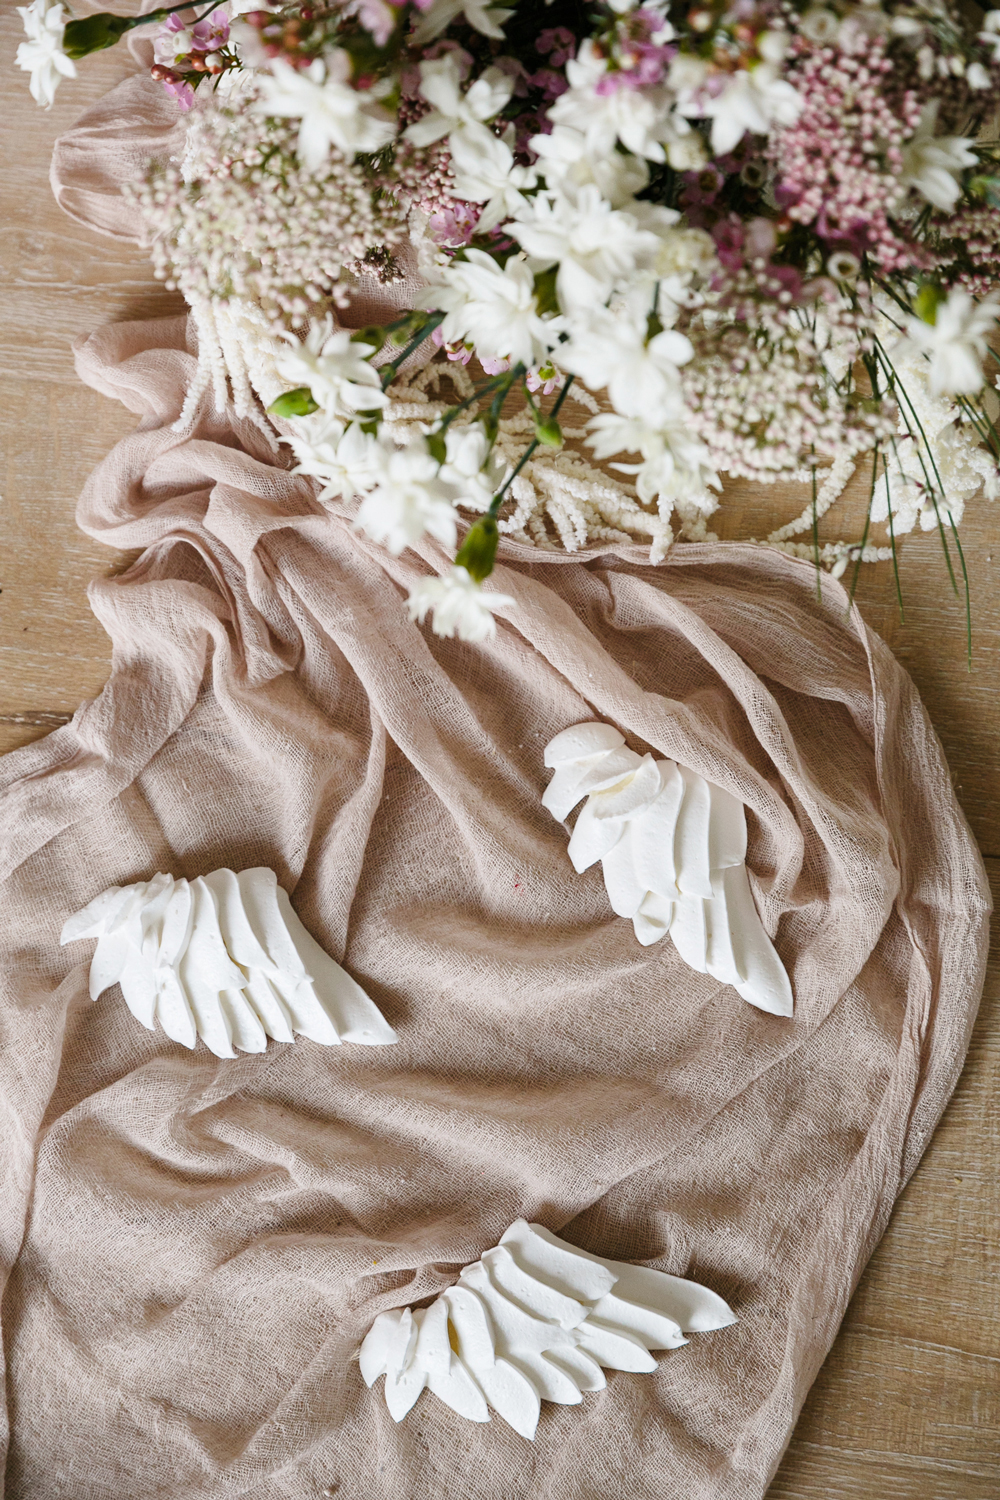 romeo and juliet valentines day party decorations angel wings and a white and blush bouquet